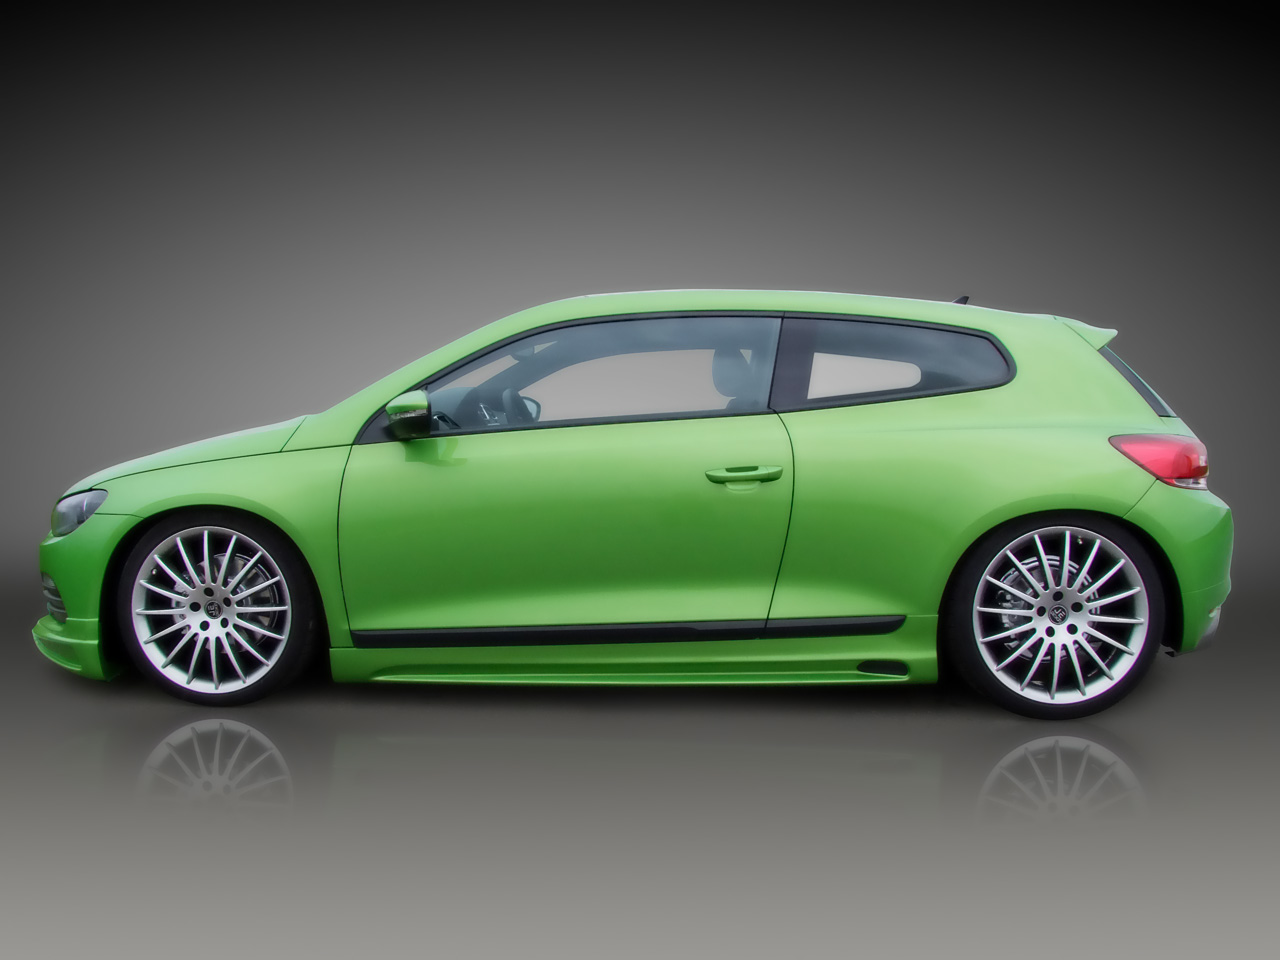 http://www.thesupercars.org/wp-content/uploads/2009/08/2010-JE-Design-Volkswagen-Scirocco1.jpg